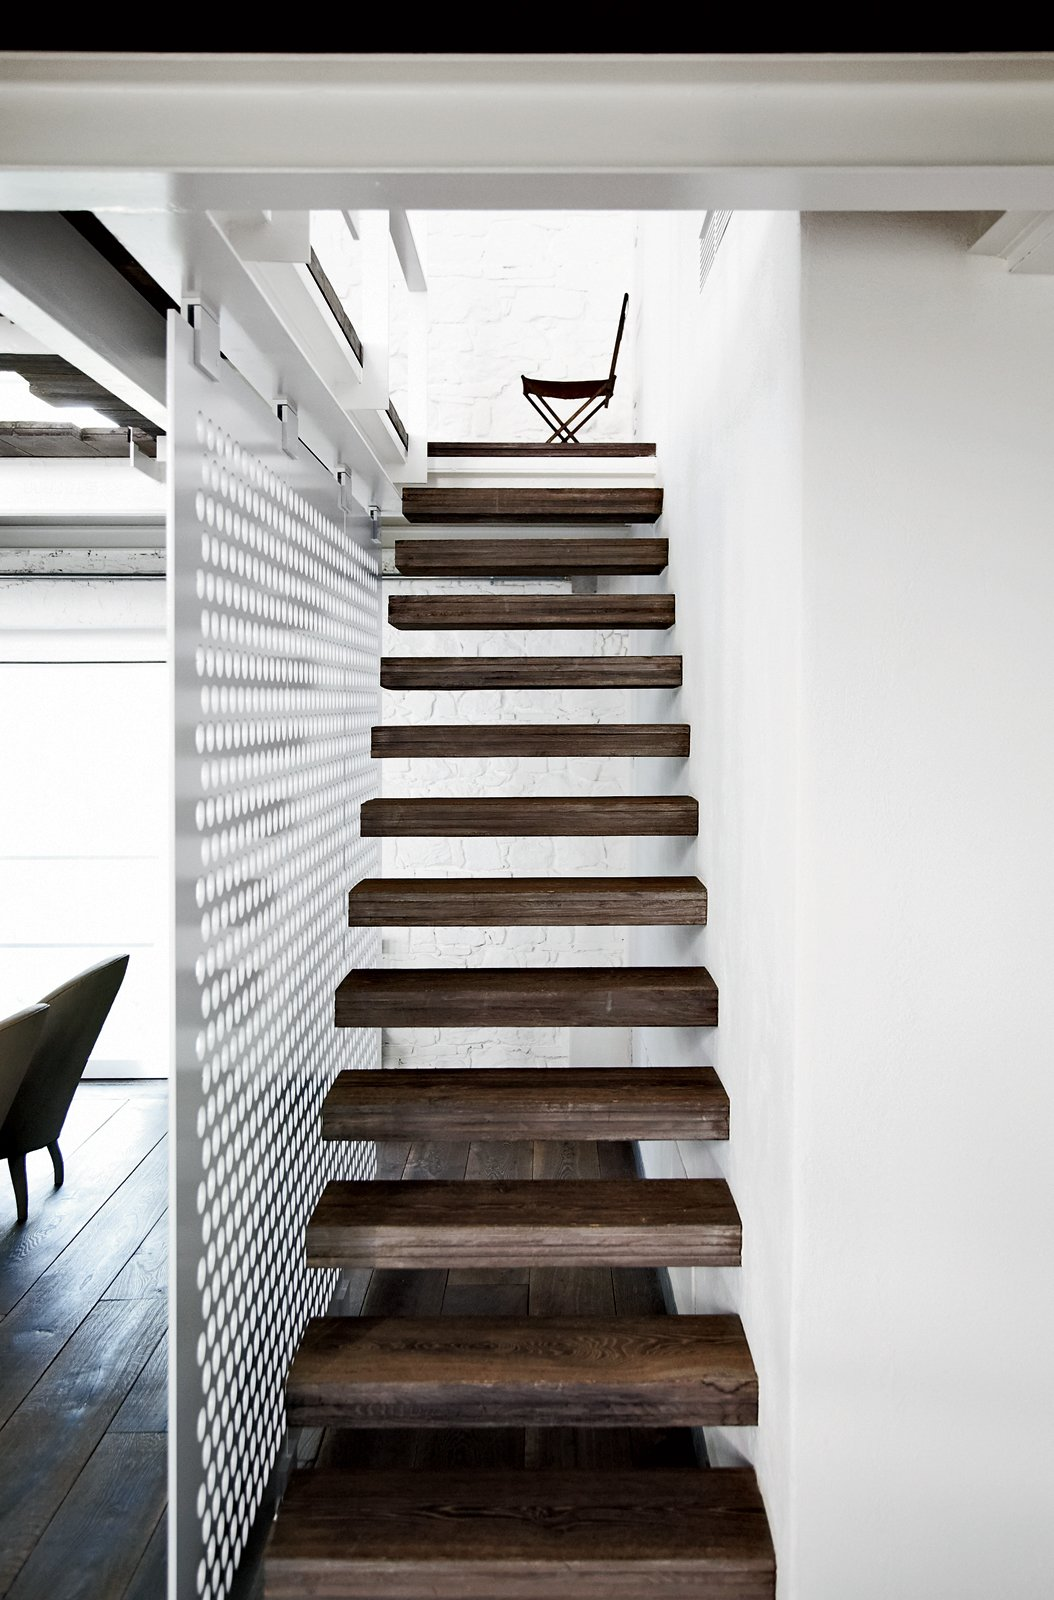 The upper level of the 5,300-square-foot space is accessed via a slender stair with reclaimed-wood treads. Tagged: Staircase, Wood Tread, and Metal Railing.  190+ Best Modern Staircase Ideas by Dwell from Paola Navone's Industrial Style Renovation in Italy